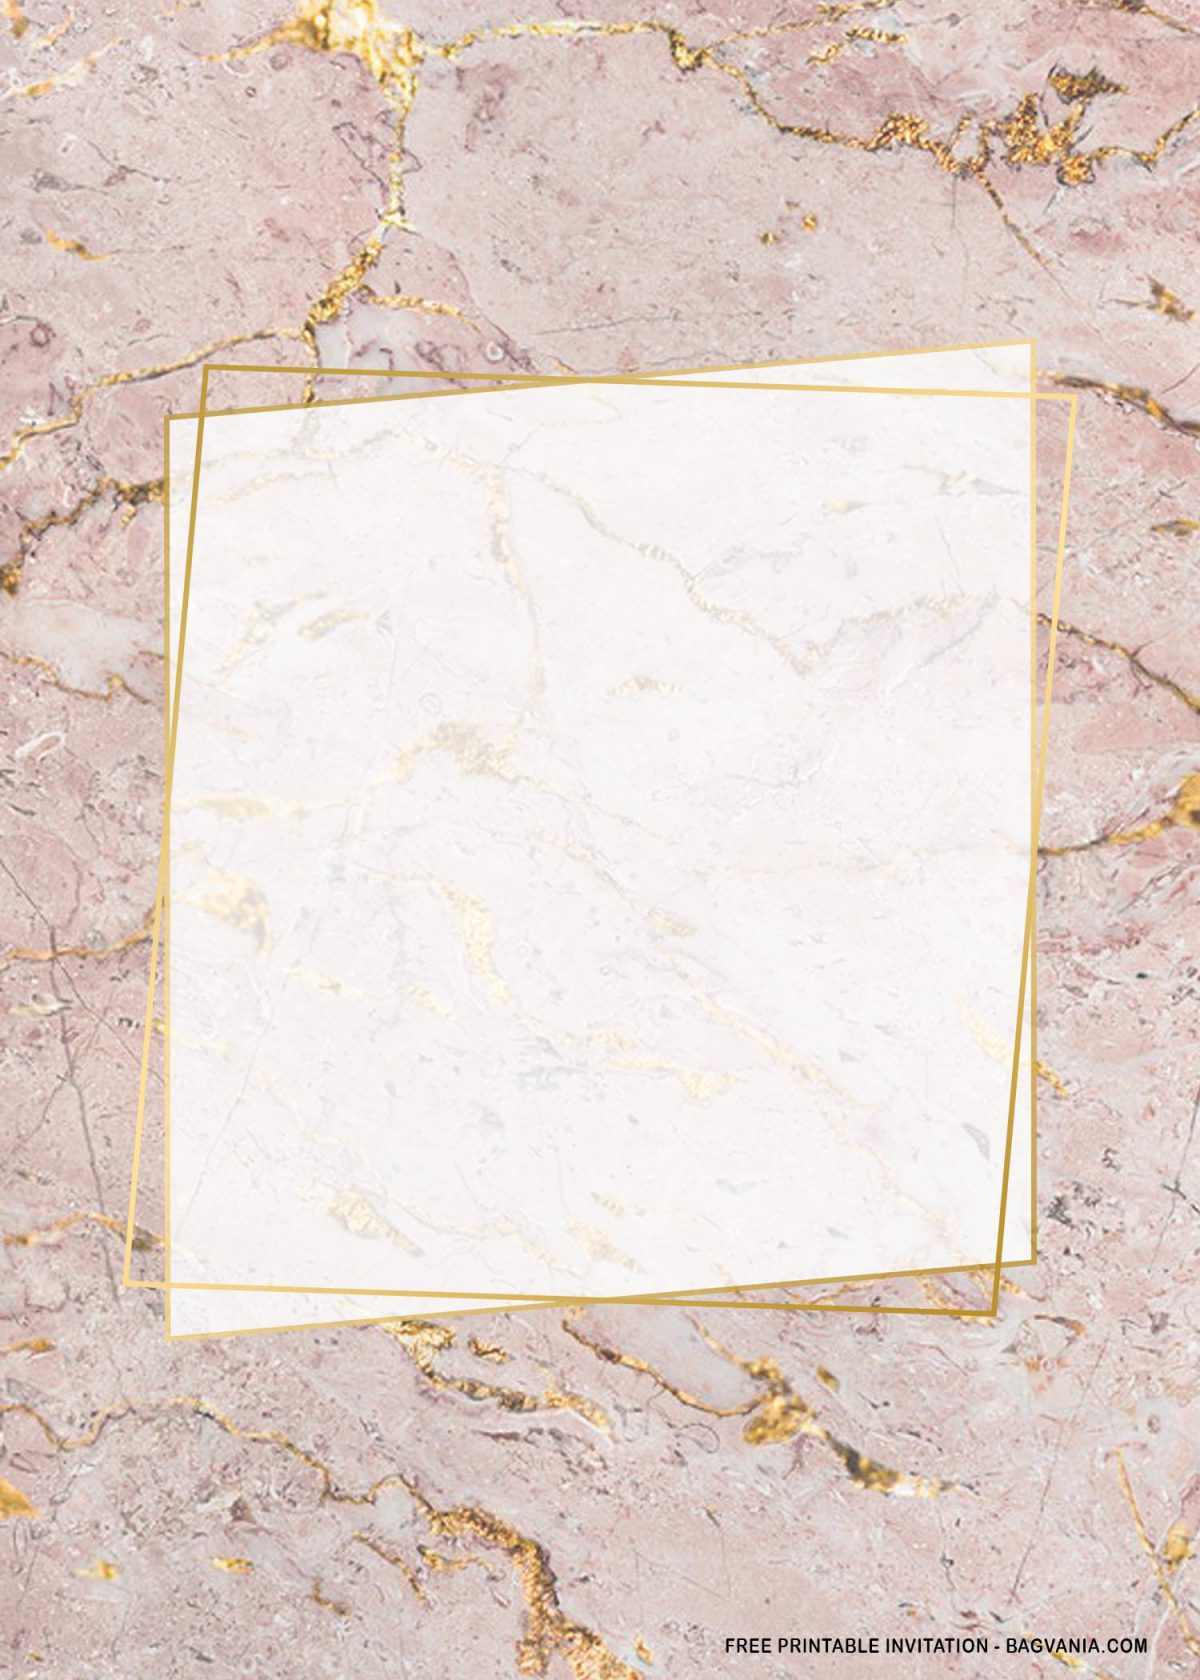 Free Printable Rectangle Gold Marble Baby Shower Invitation Templates With Pink Marble Background